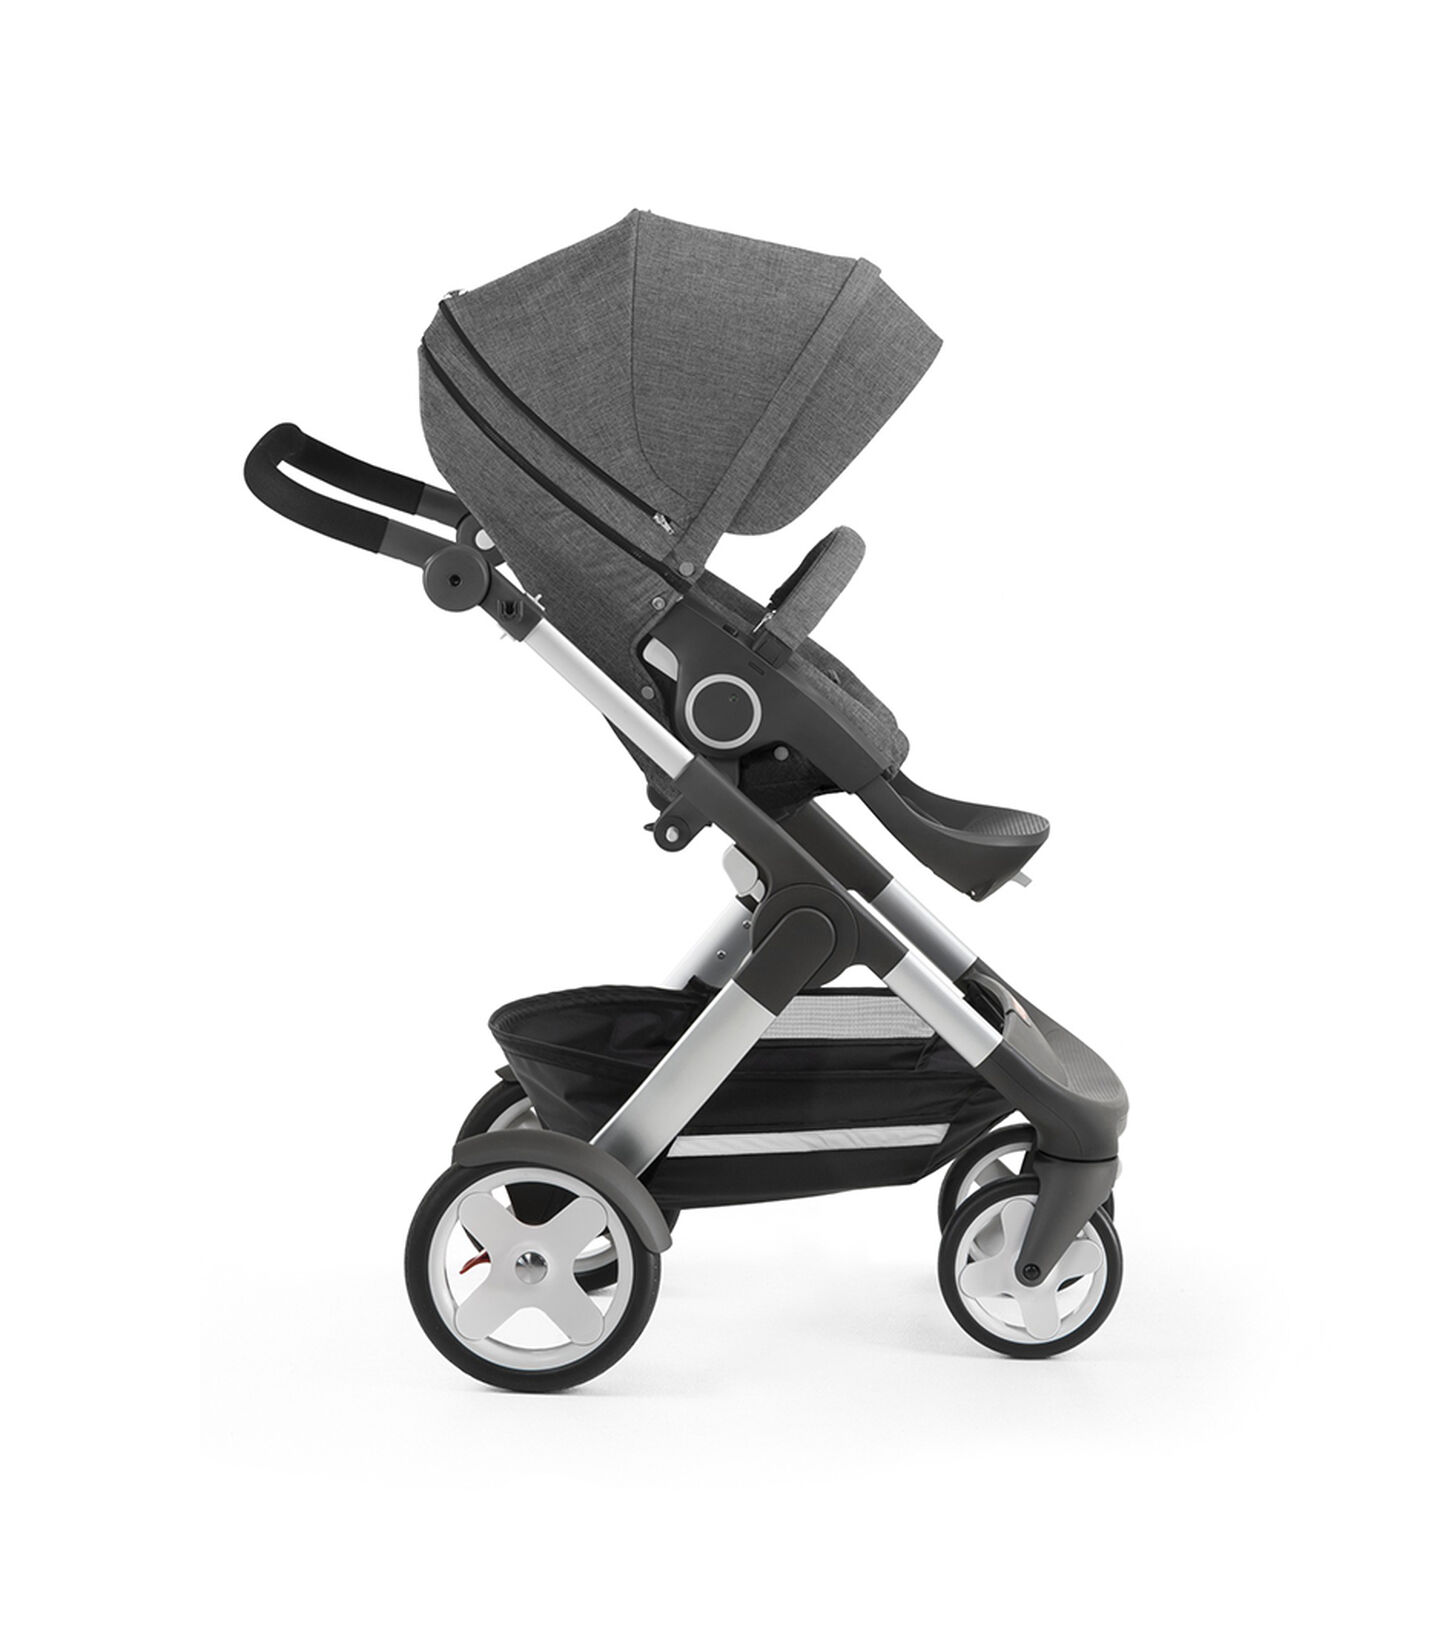 Stokke® Trailz with Stokke® Stroller Seat, forward facing, rest position. Black Melange.